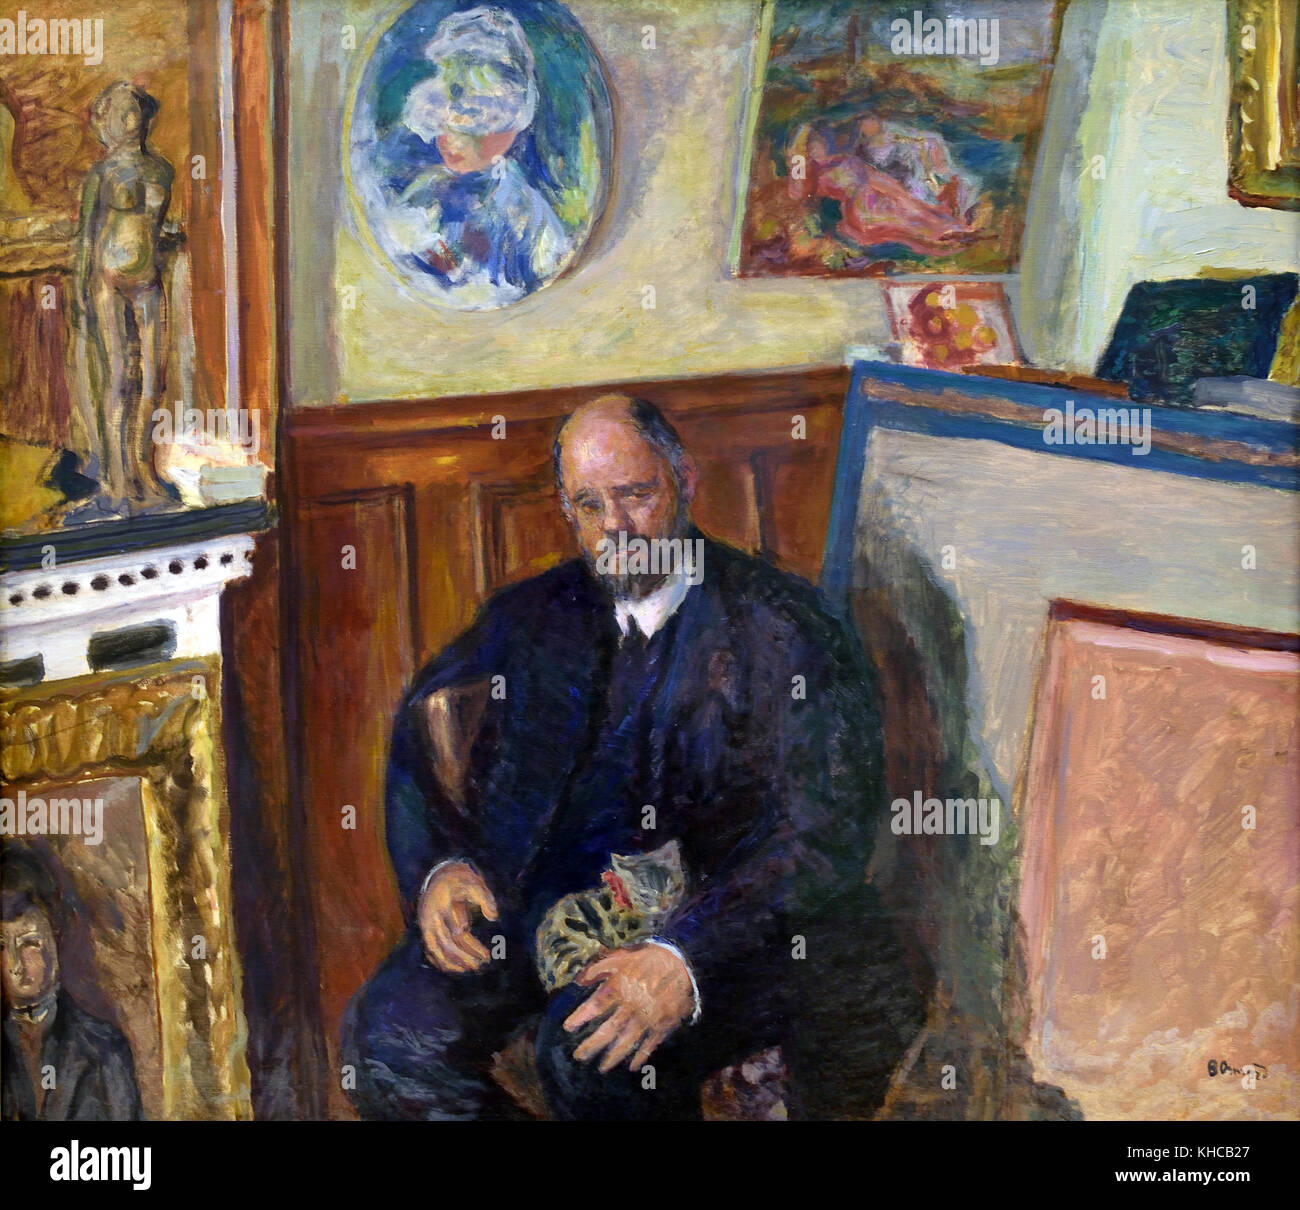 Portrait of Ambroise Vollard at Chat 1924 Pierre Bonnard 1867 - 1947 French, France. - Stock Image